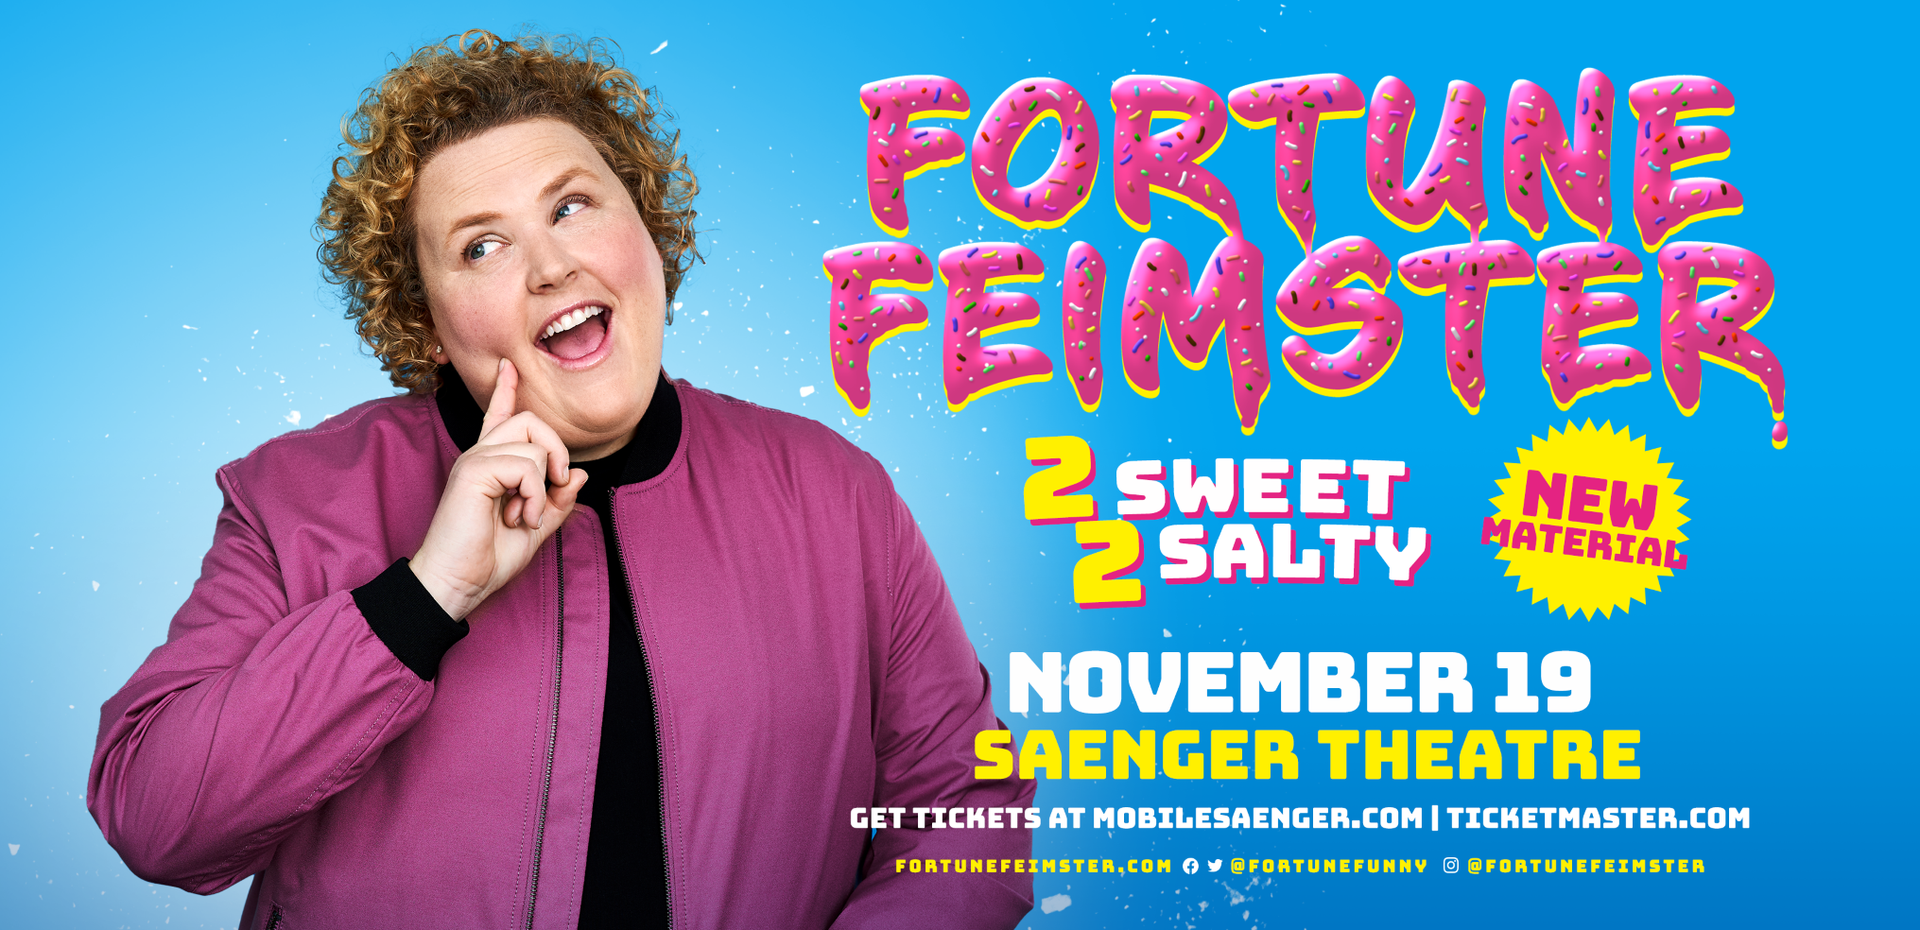 Fortune Feimster - 2 Sweet 2 Salty Tour